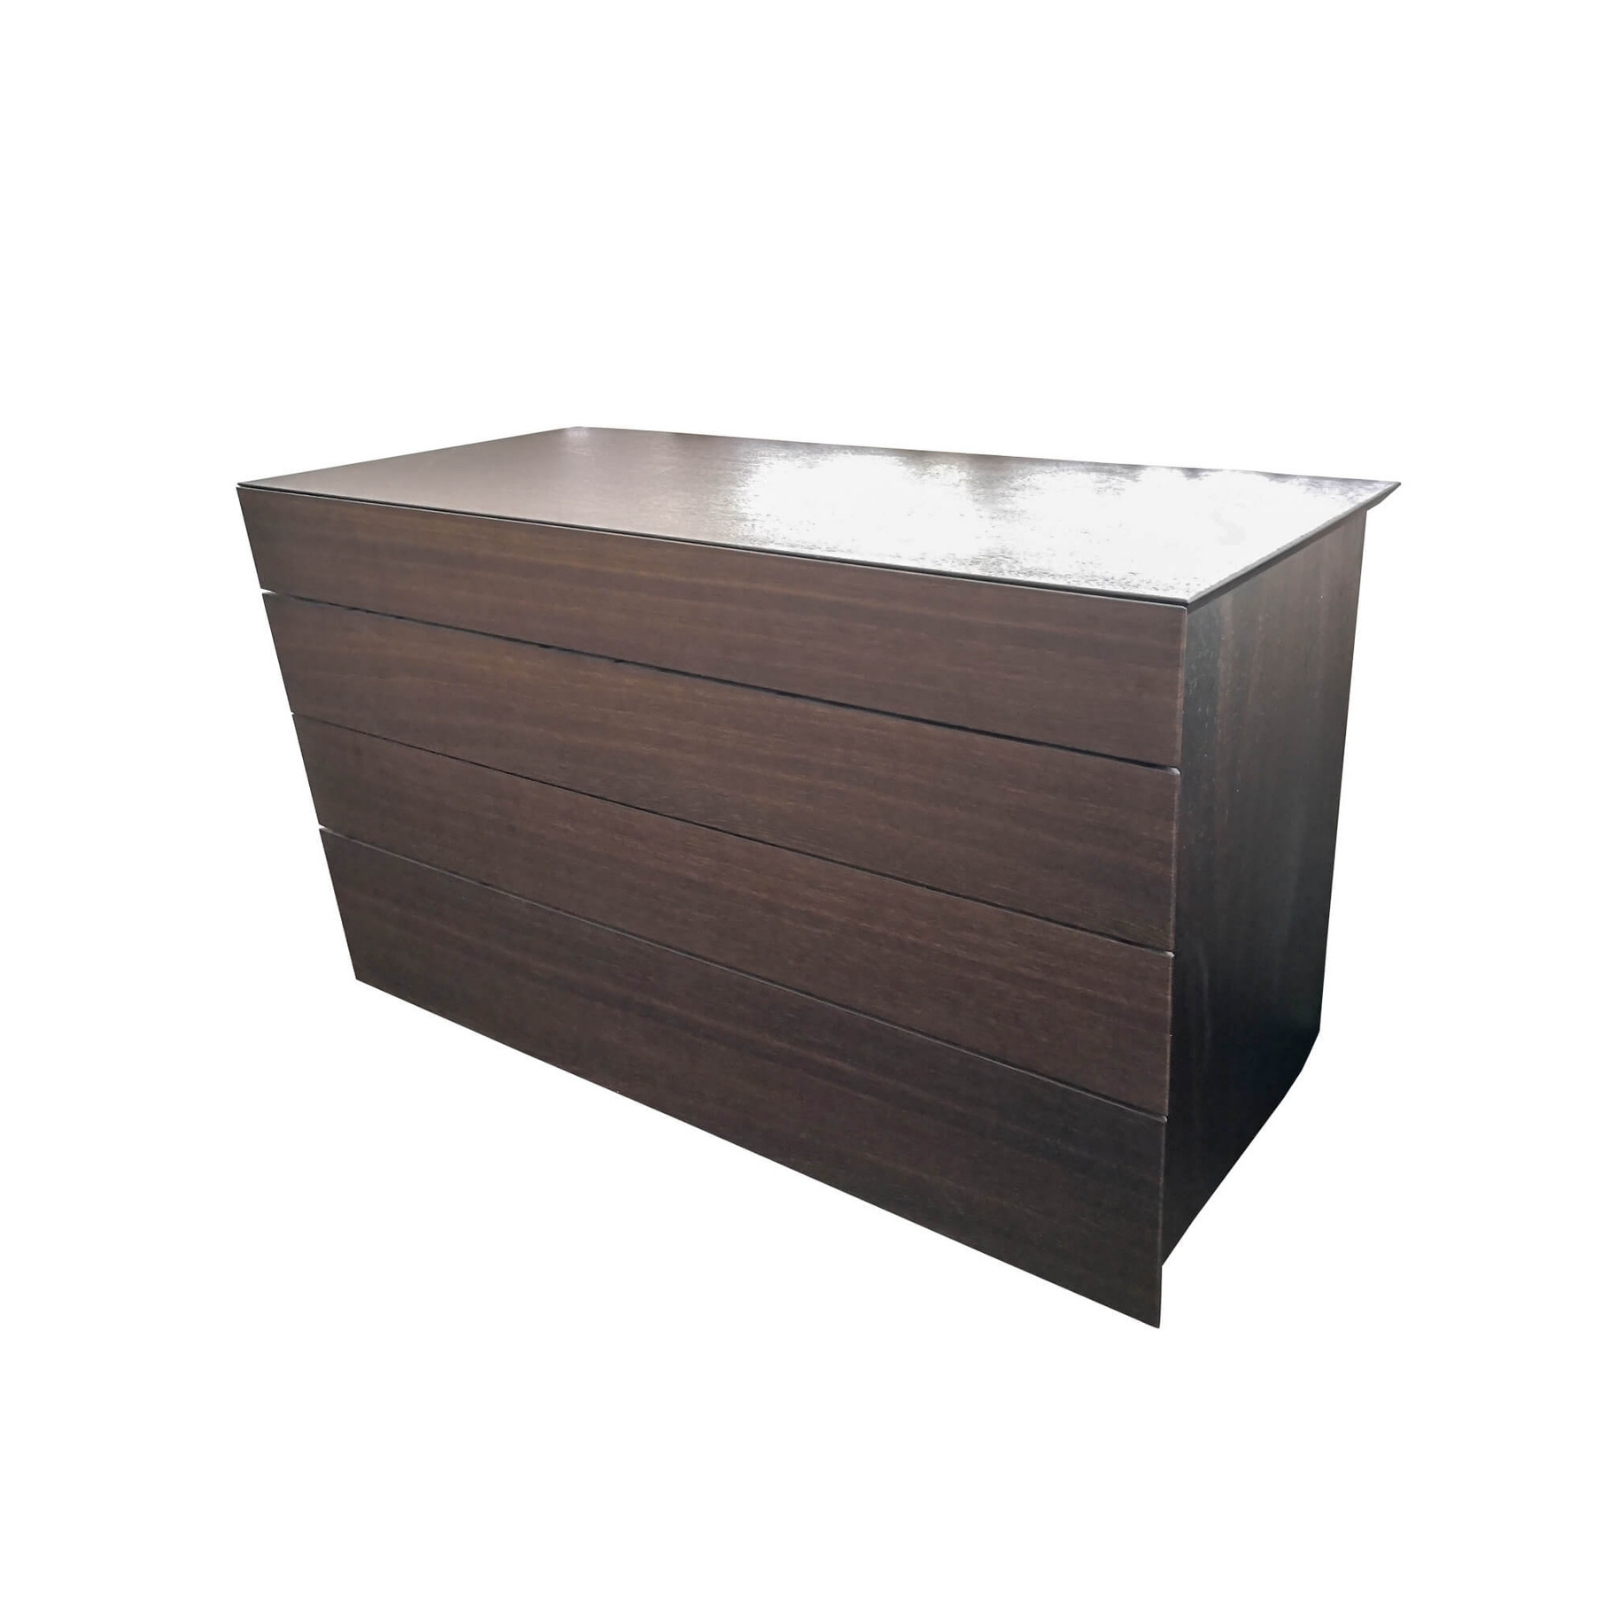 Two Design Lovers Poliform drawers front